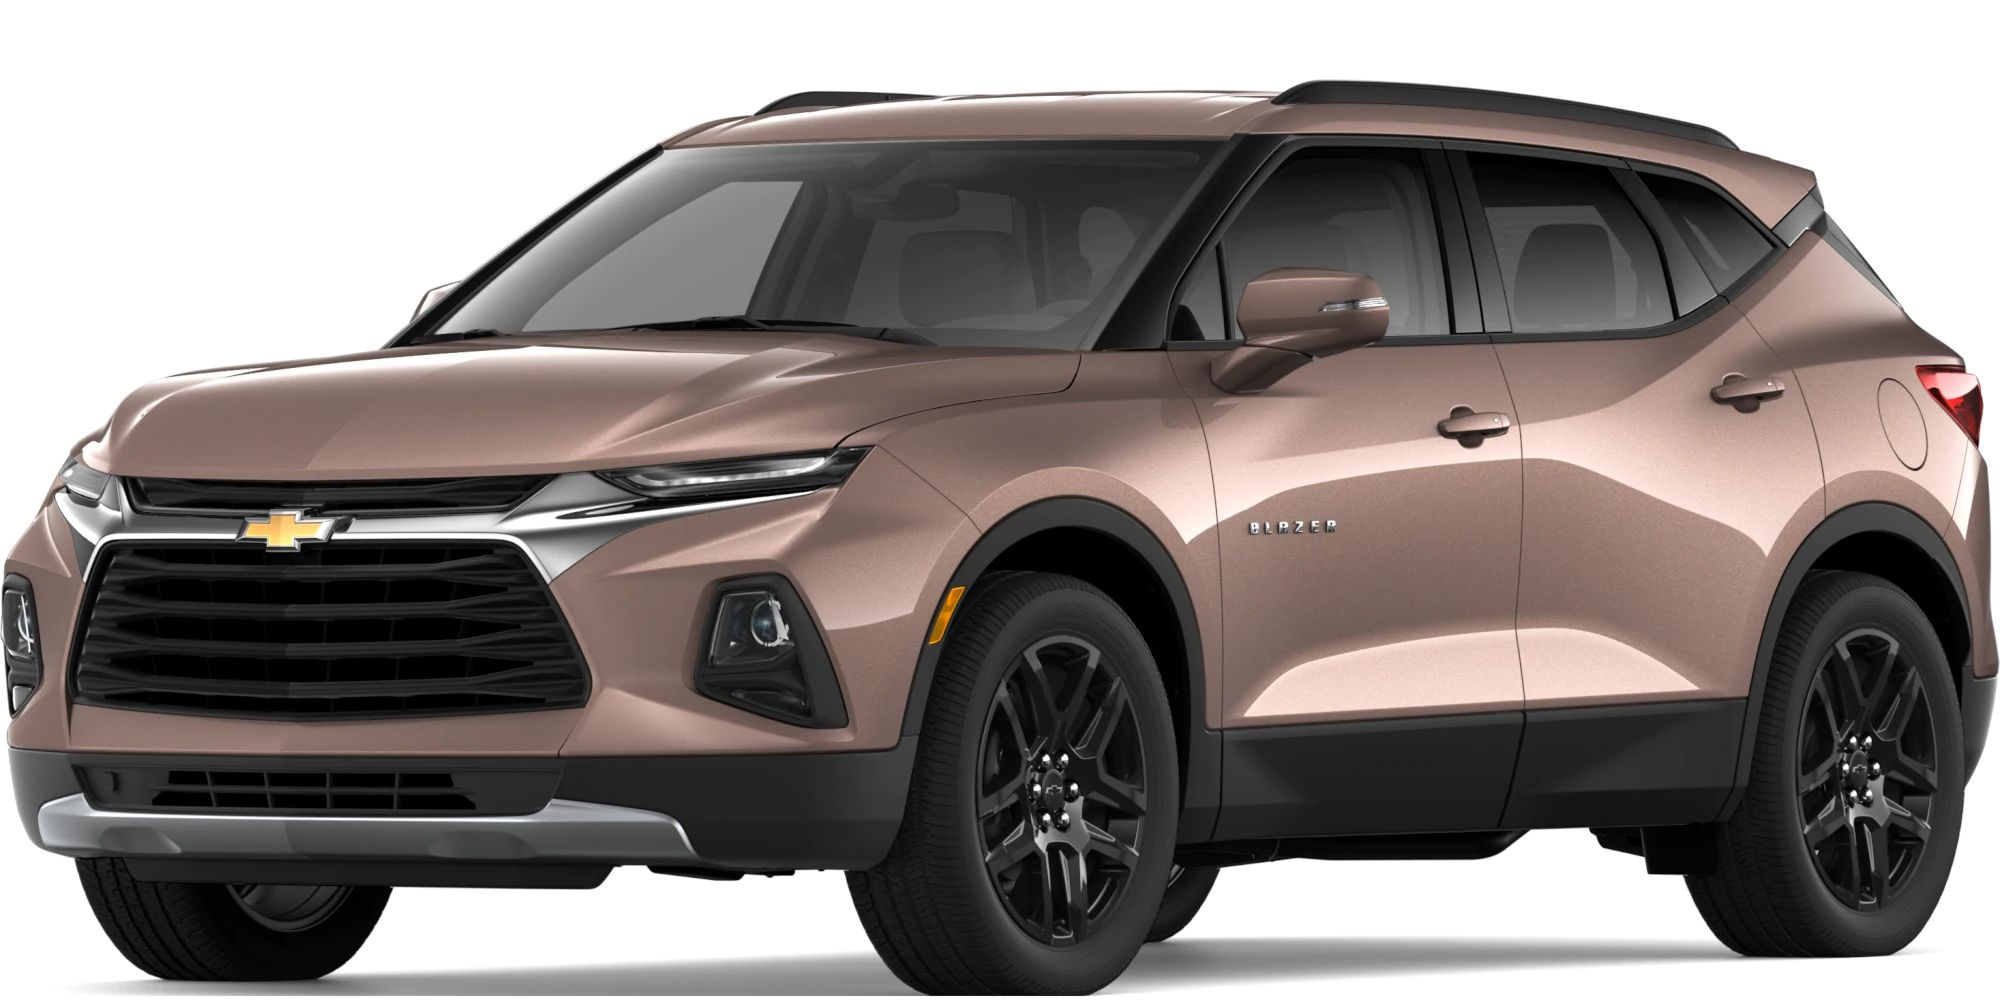 2019 Chevy Blazer Exterior Driver Side Front Profile in Oakwood Metallic